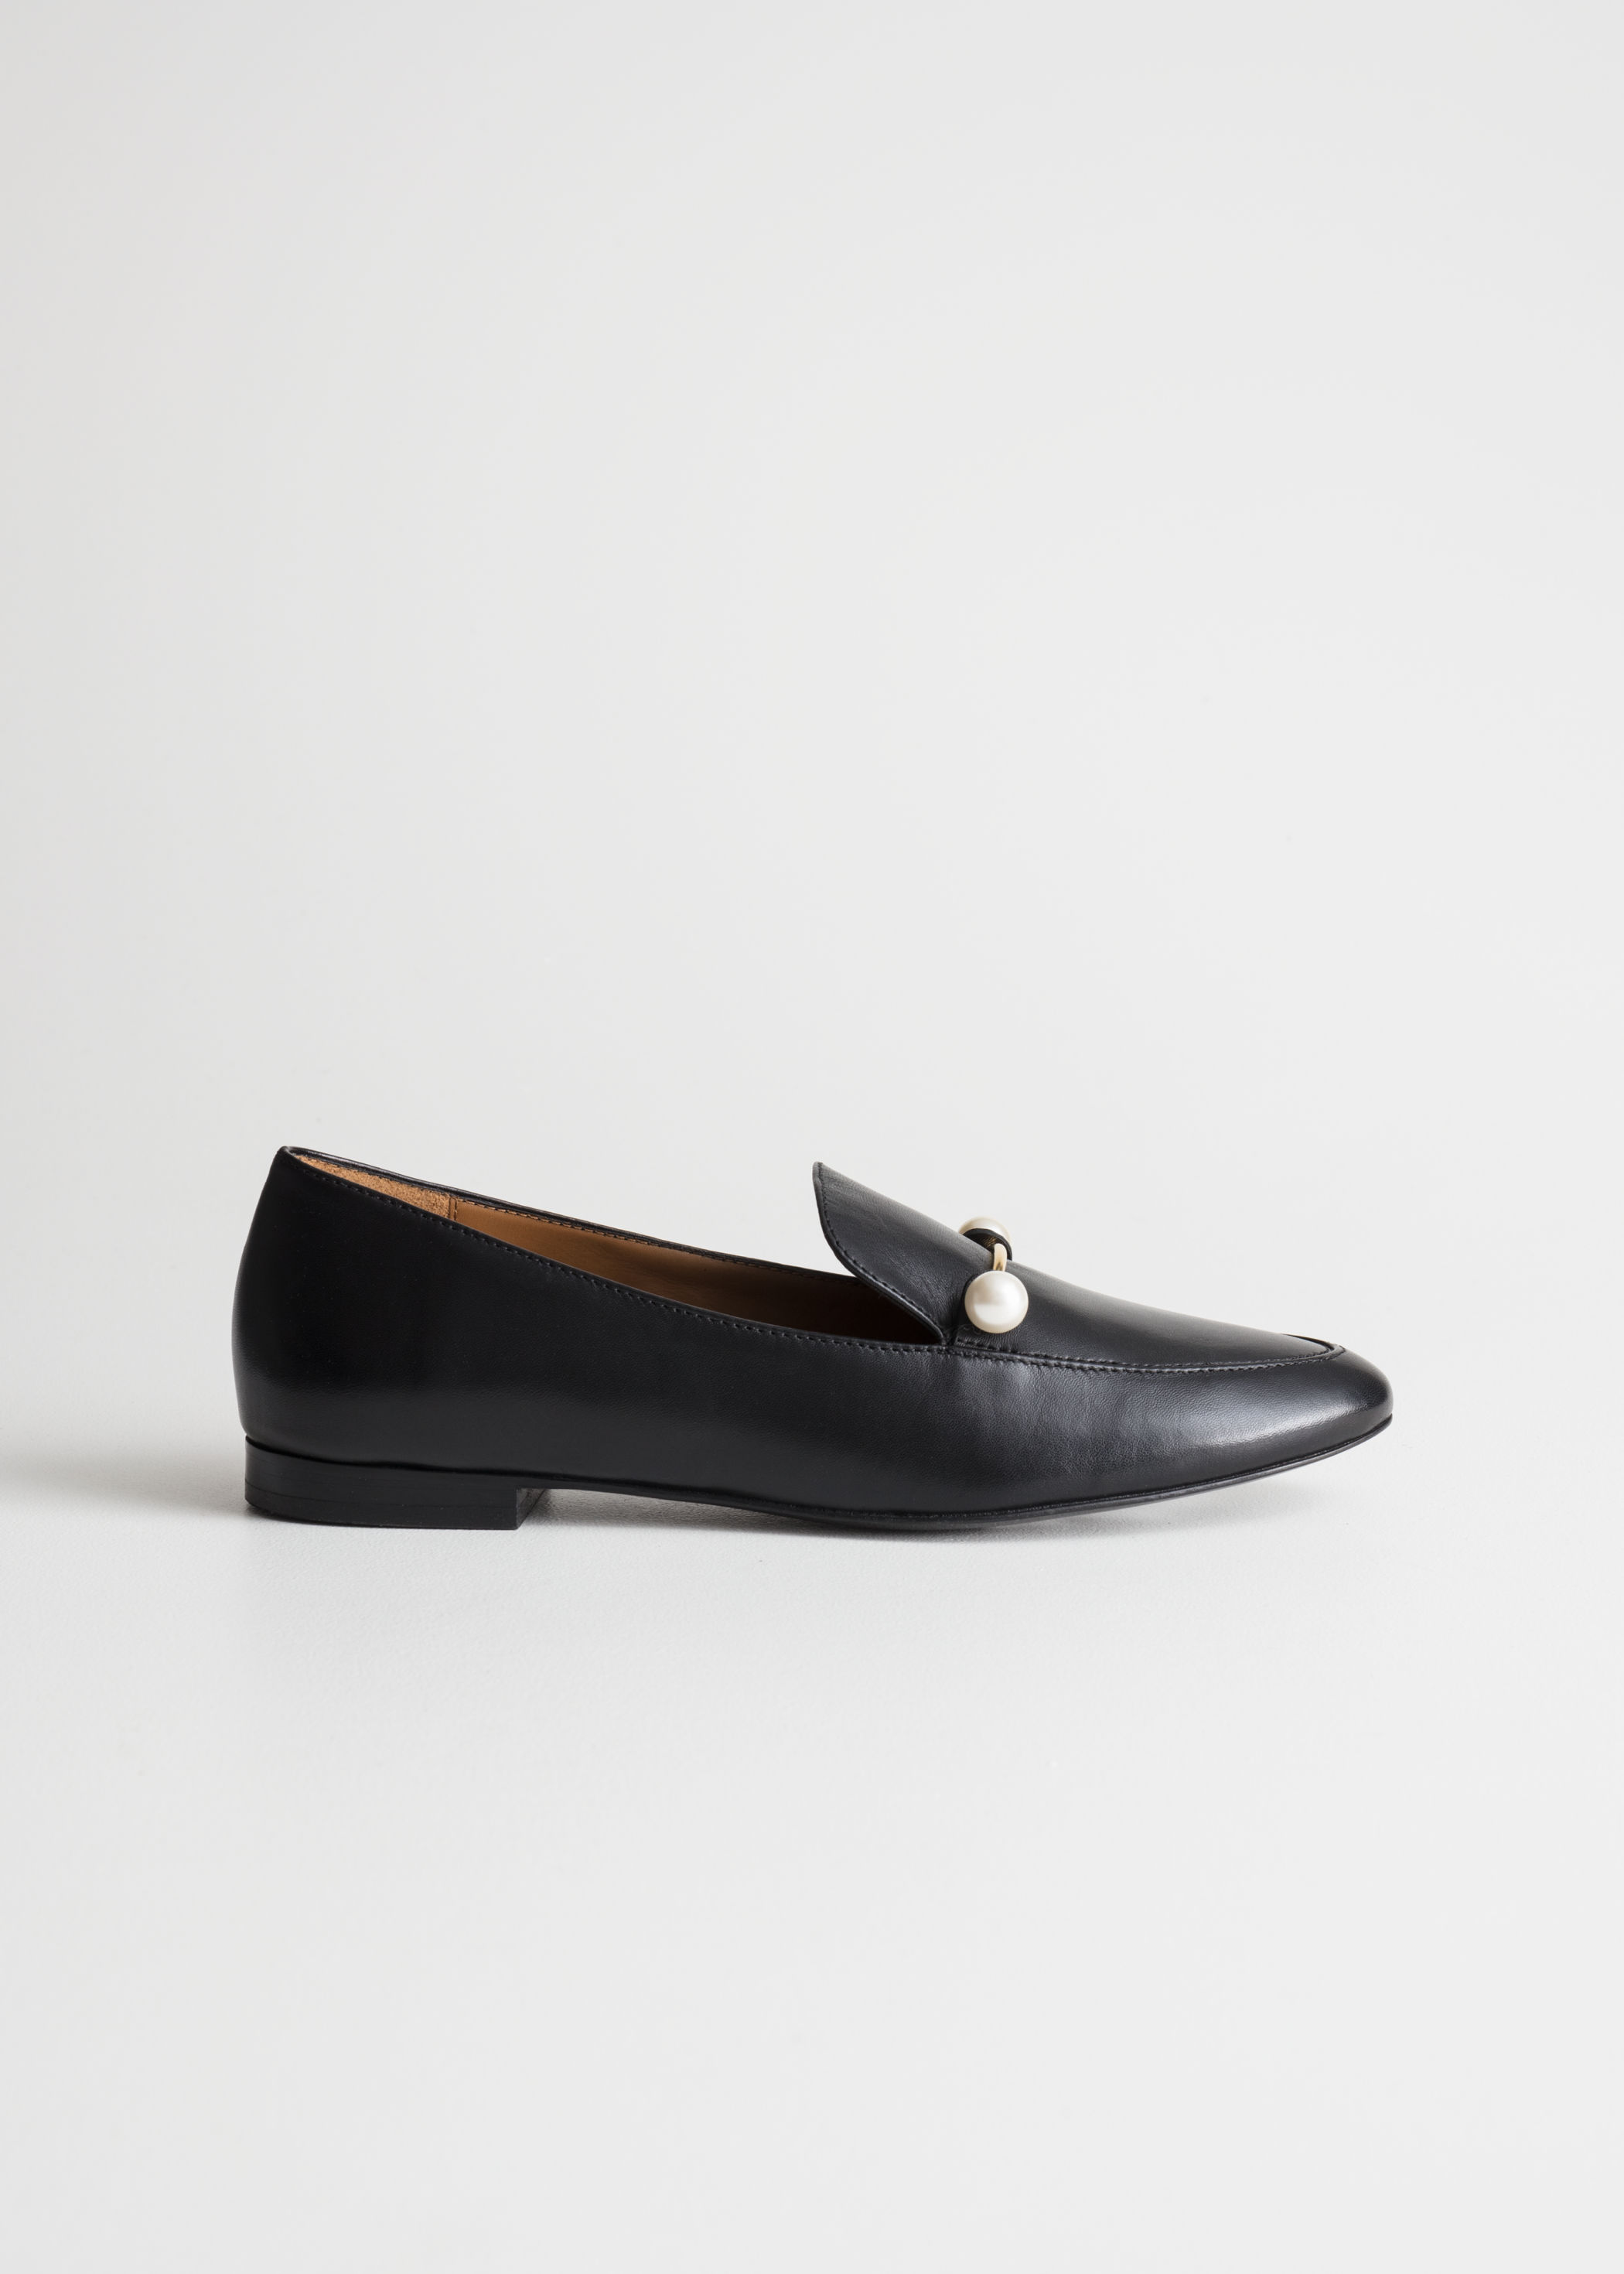 Classic Chic Leather Loafers